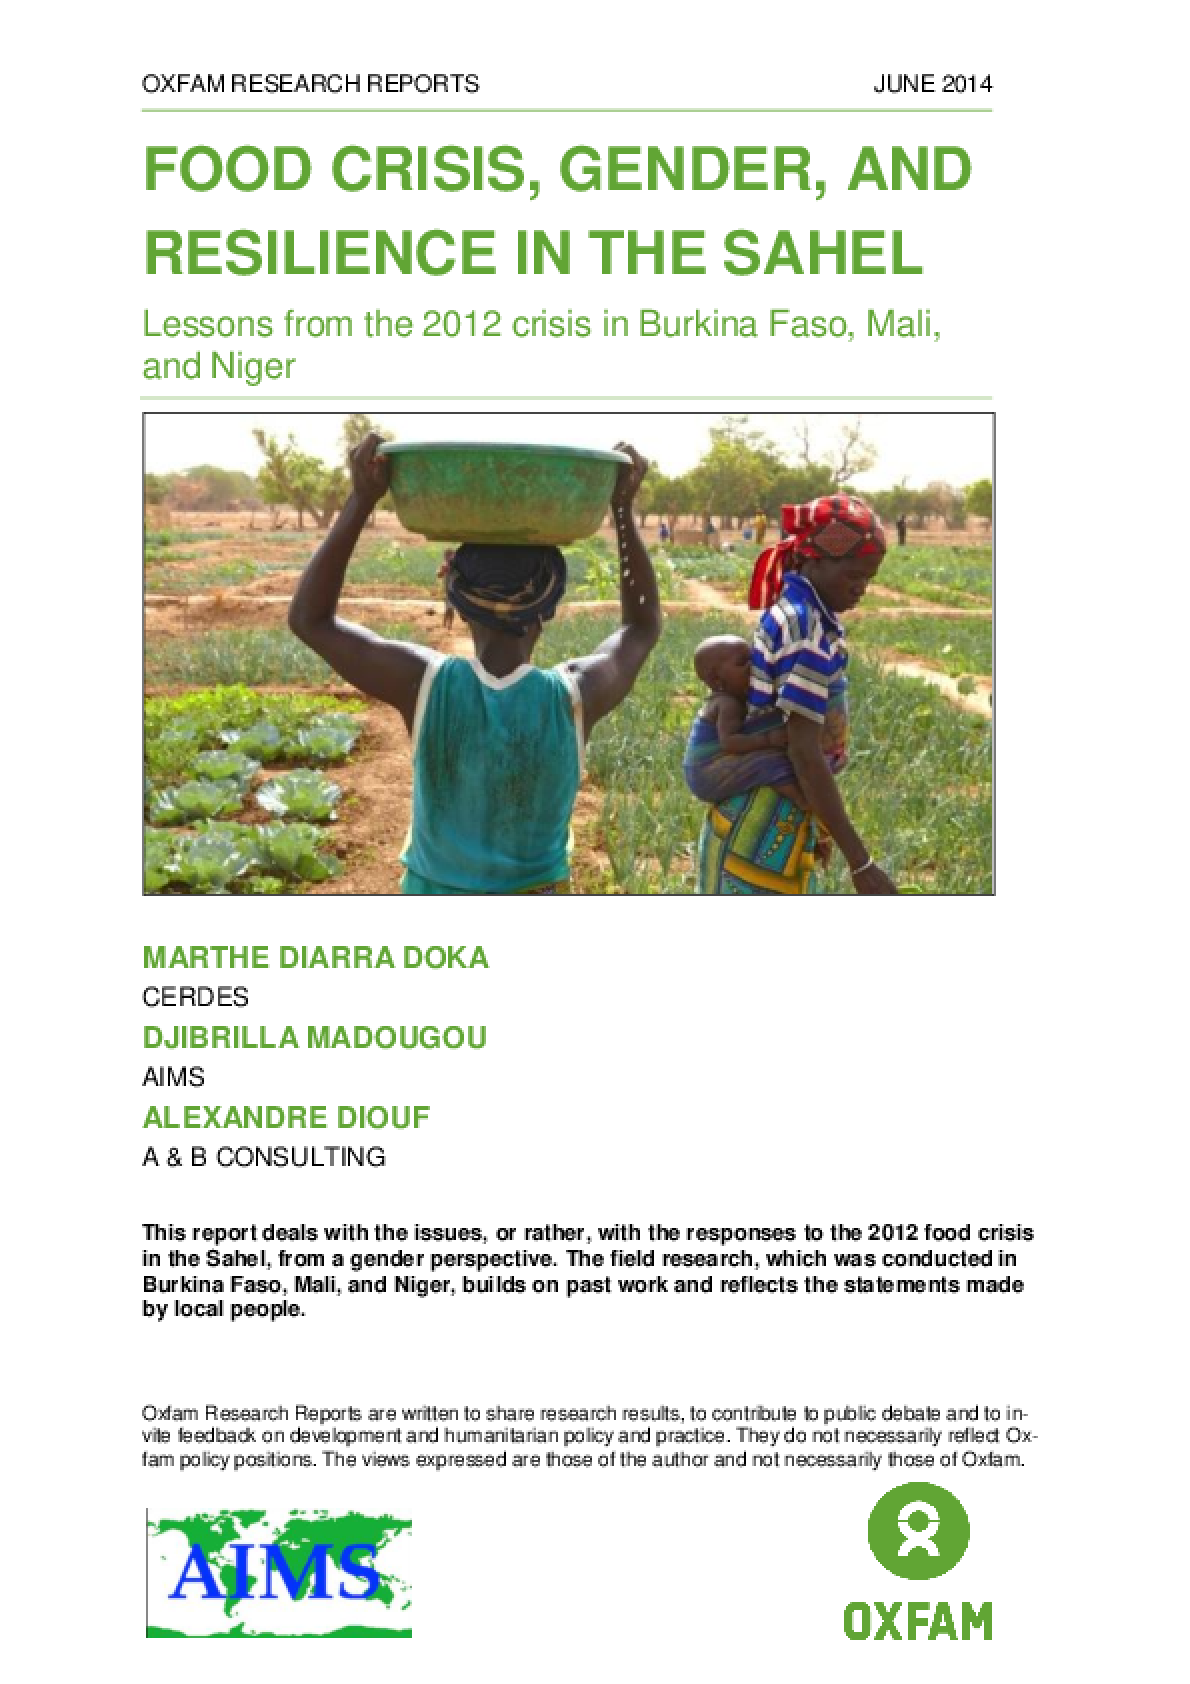 Food Crisis, Gender, and Resilience in the Sahel: Lessons from the 2012 crisis in Burkina Faso, Mali, and Niger